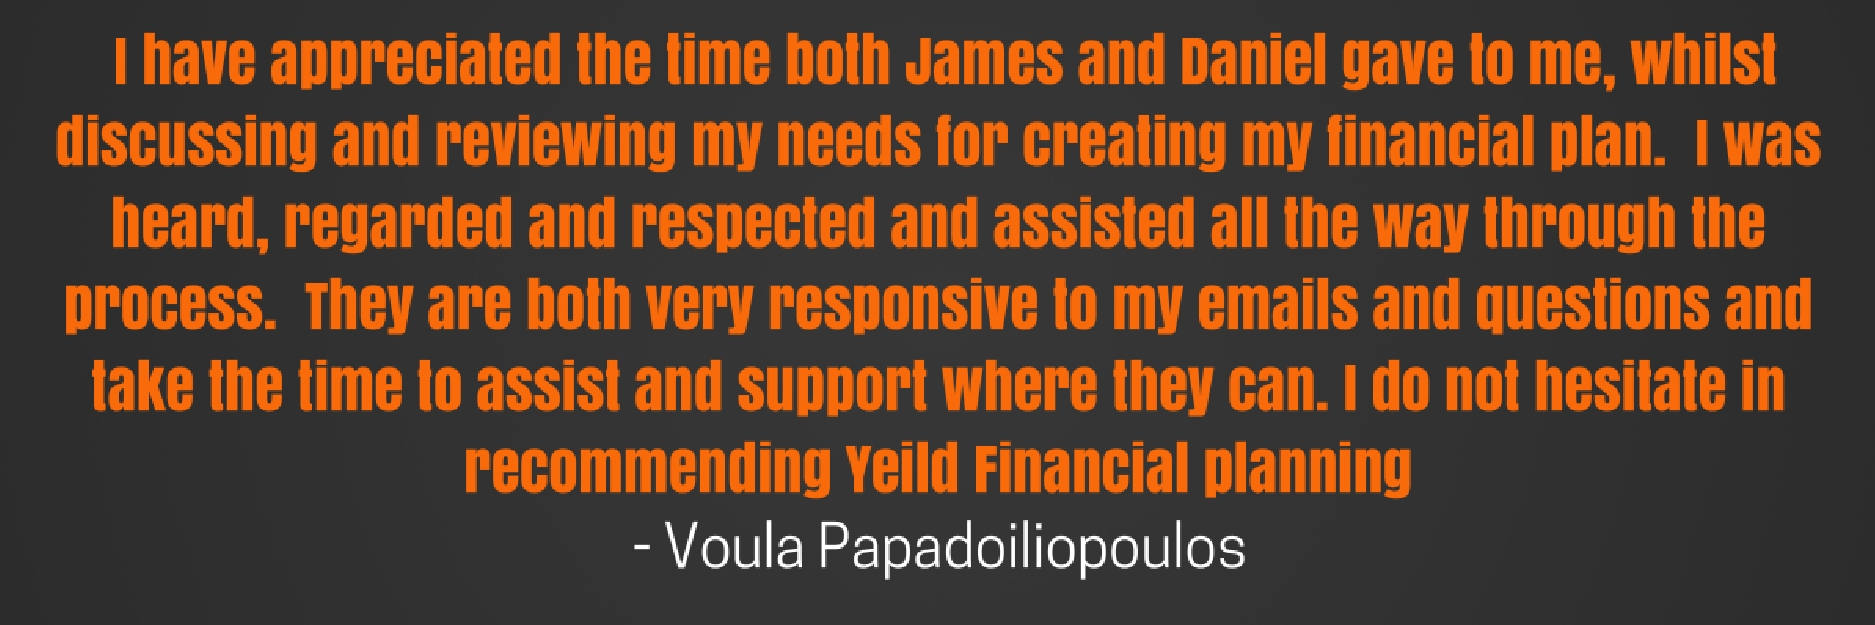 Yield Financial Planning - Financial Advisors Melbourne